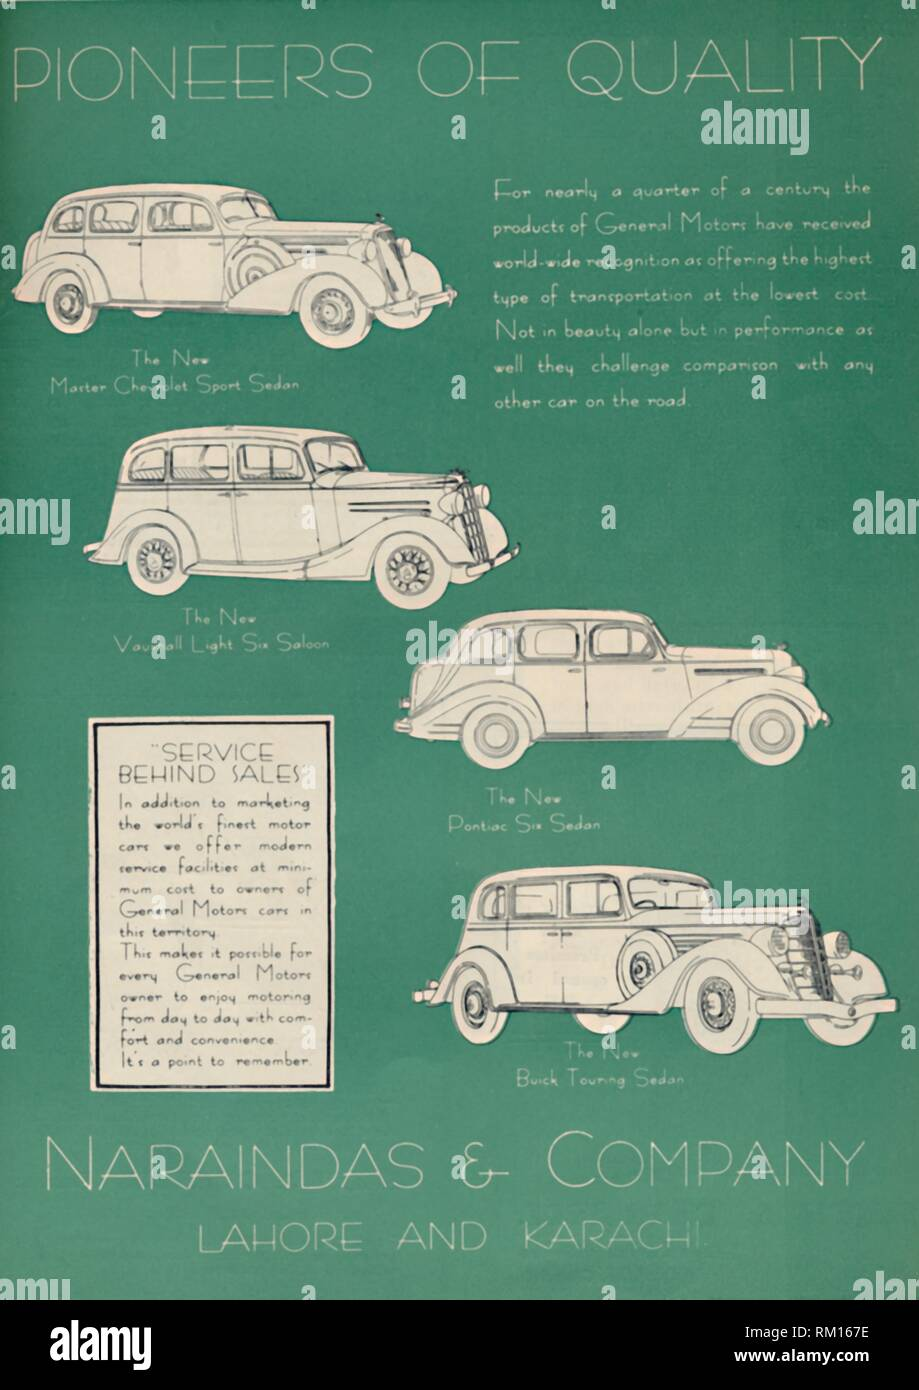 """Advertisement for Naraindas & Company, suppliers of motor cars, 1936. Naraindas, based in Lahore and Karachi (at that time part of British India), supplied cars manufactured by General Motors such as Chevrolets, Pontiacs and Buicks. From """"The Civil and Military Gazette"""" Annual, 1936. [India, 1936] - Stock Image"""